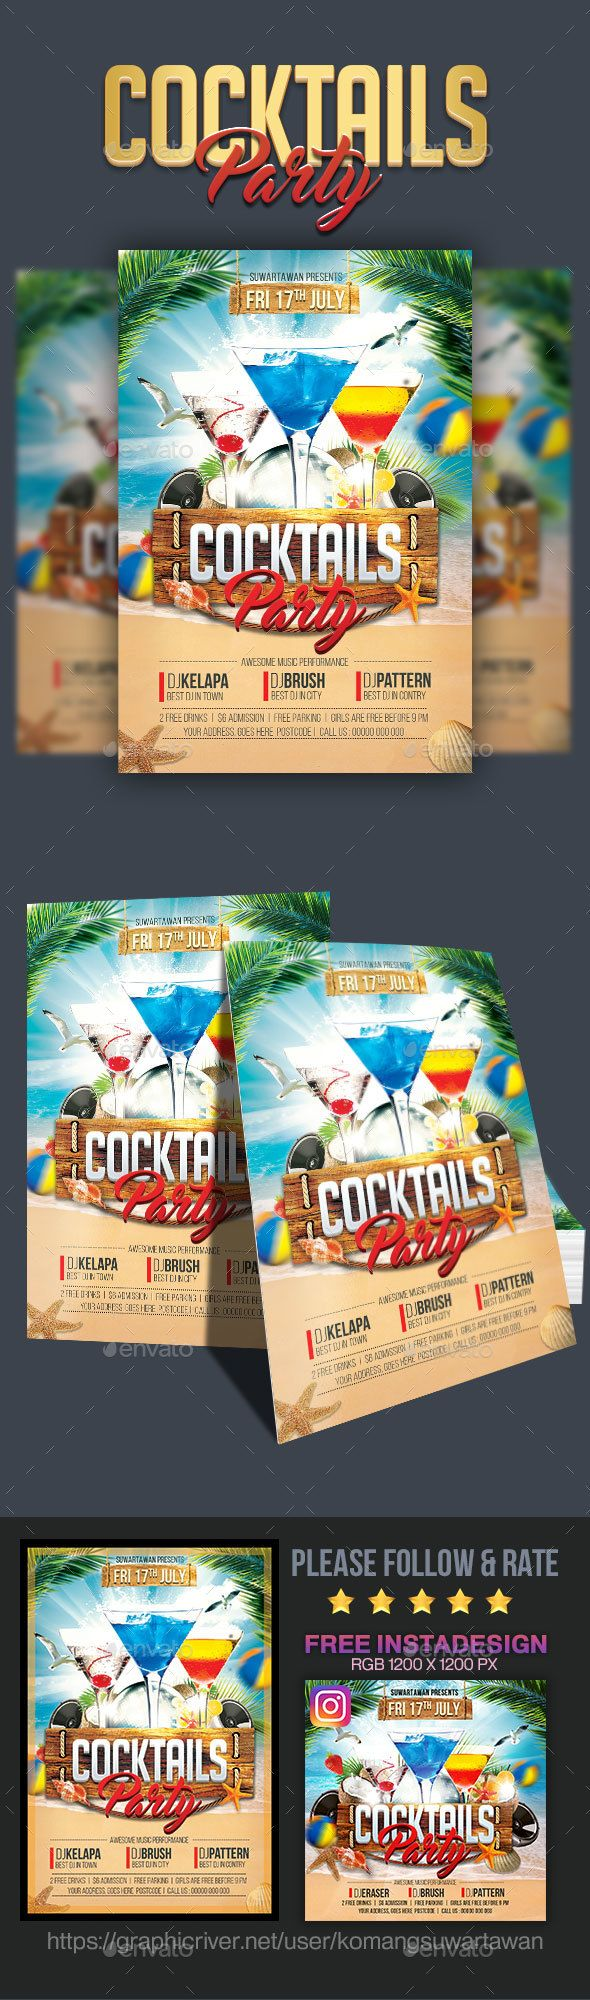 Cocktails #Party #Flyer - Clubs & Parties Events Download here: https://graphicriver.net/item/cocktails-party-flyer/19984600?ref=alena994